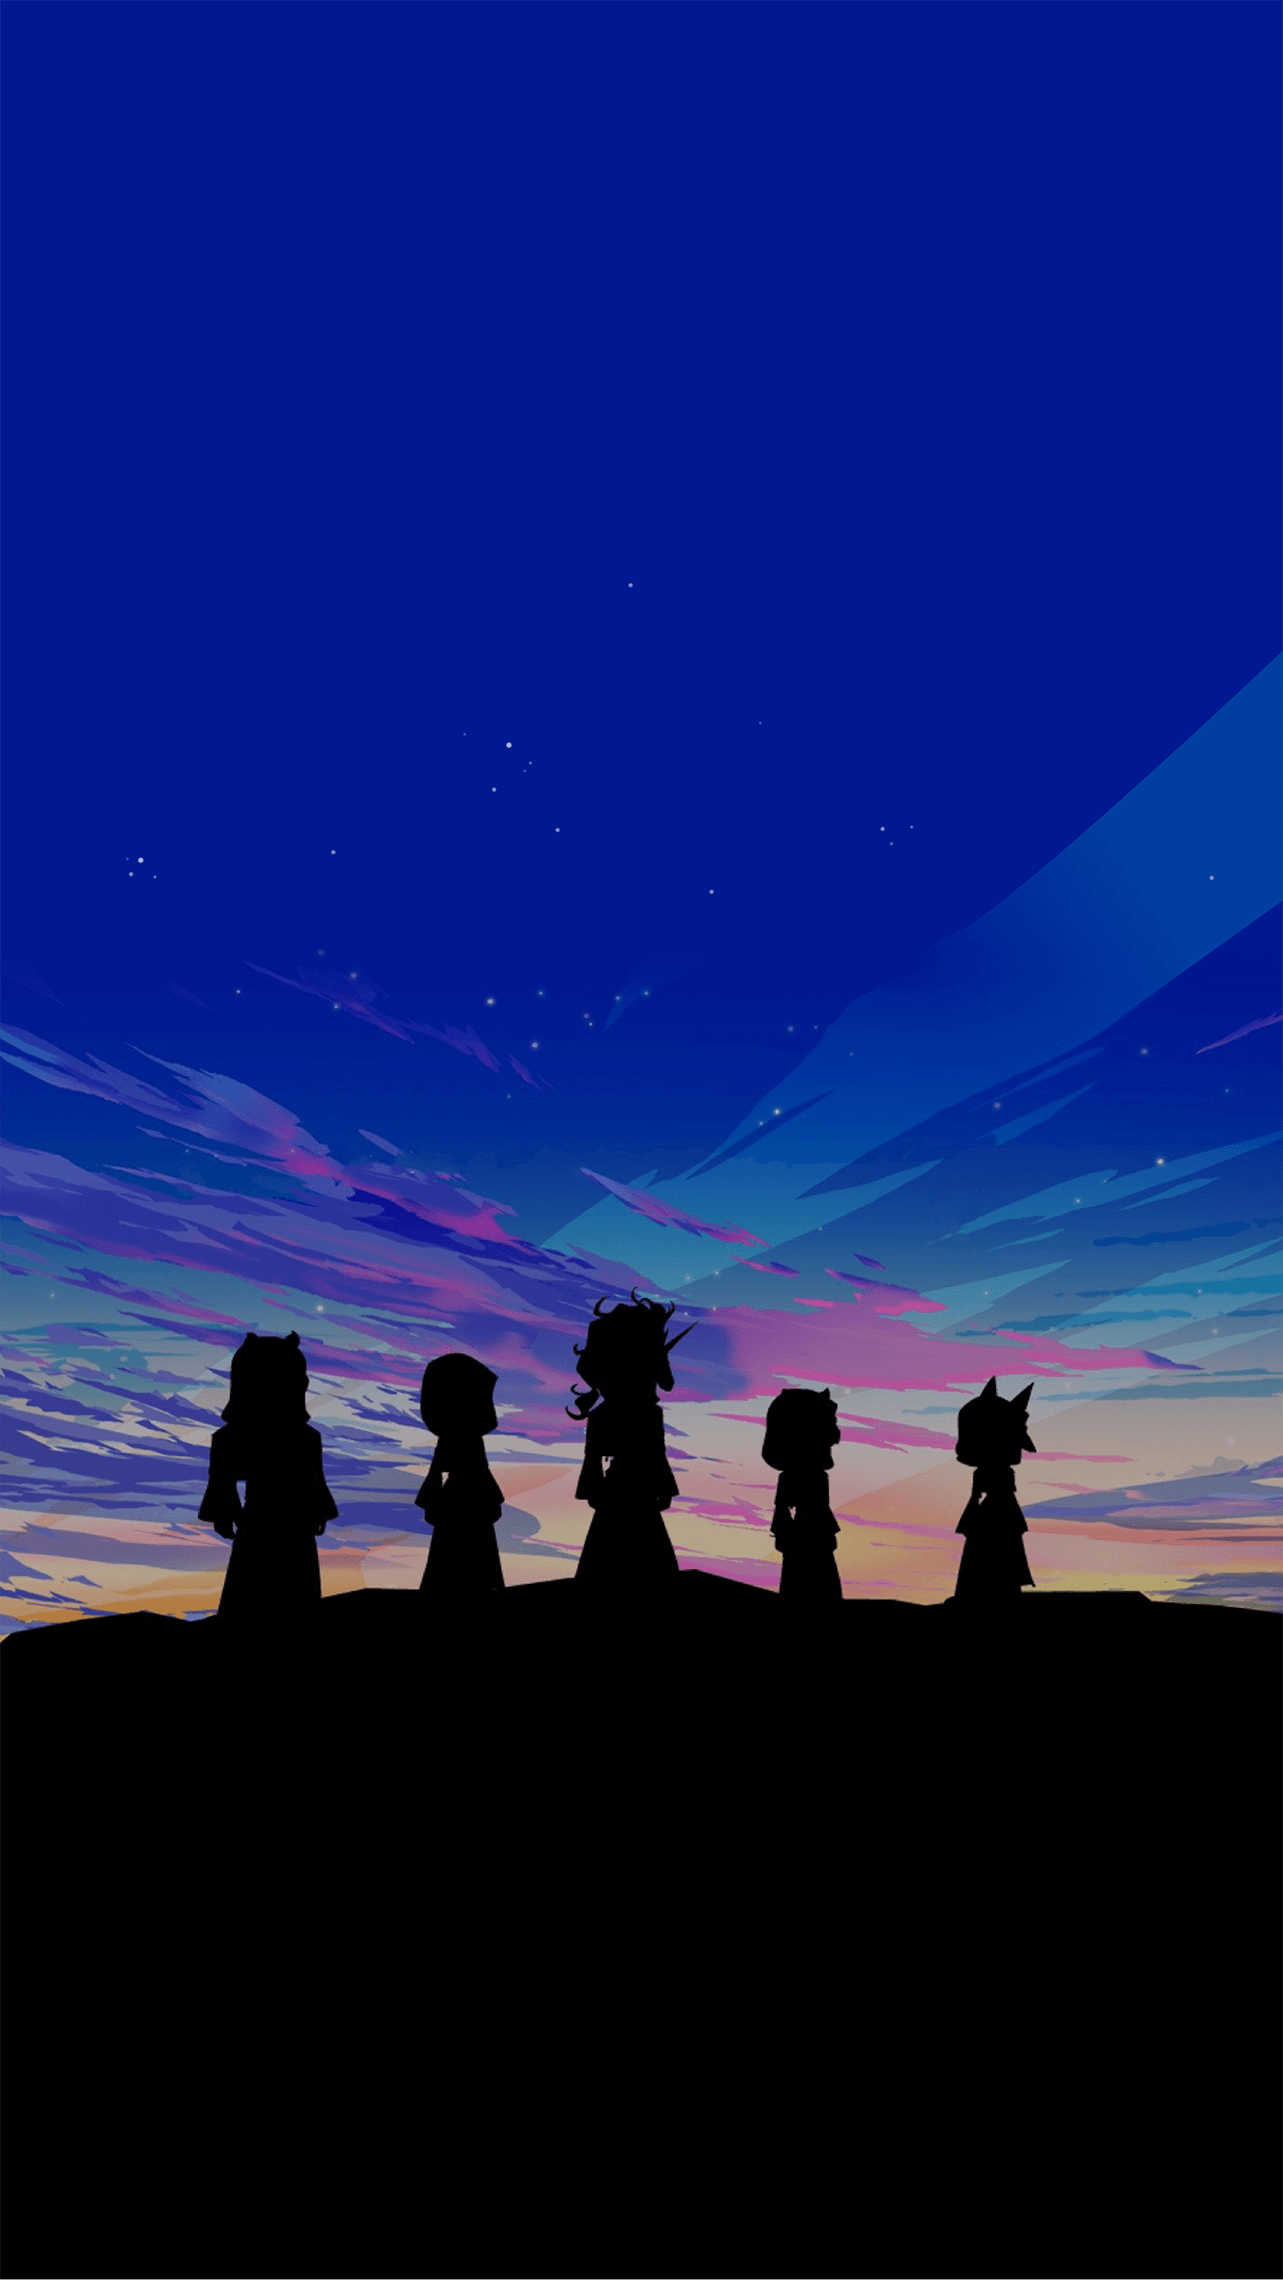 1283x2280 wallpaper.wiki-Kingdom-Hearts-iPhone-Background-PIC-WPD008839 ...